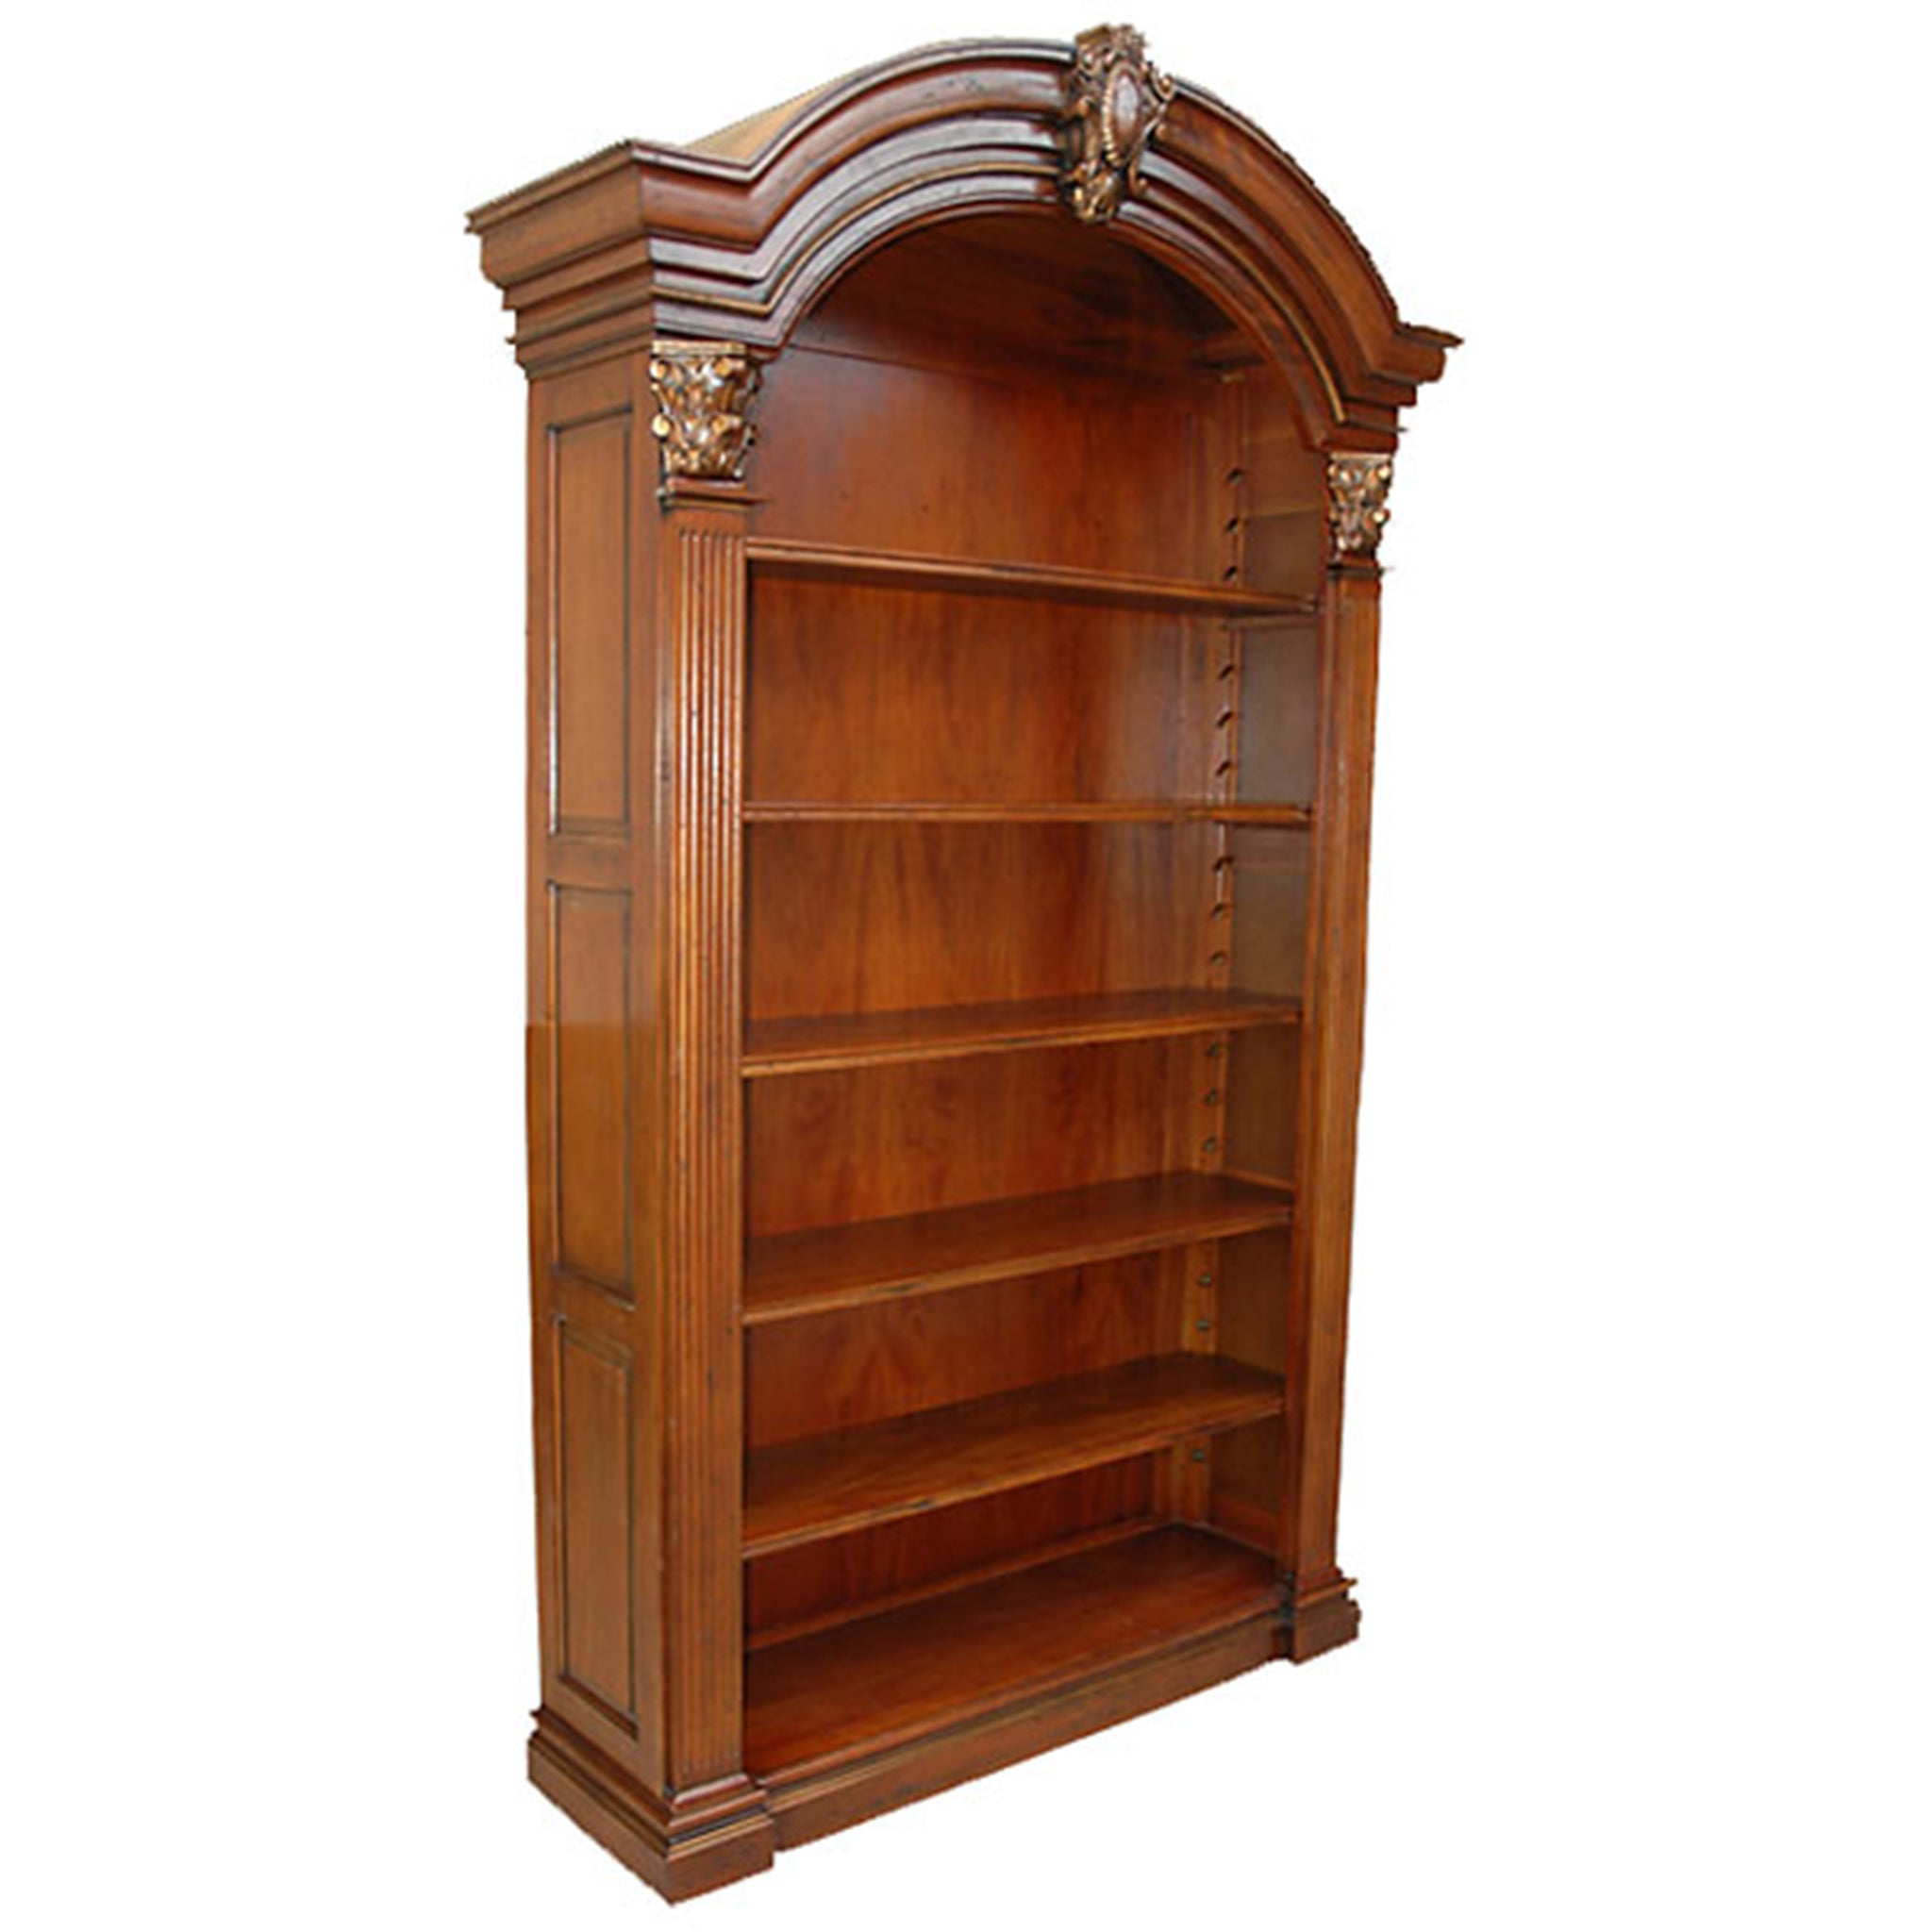 Arched Elegant Bookcase Stained Finish - Furniture on Main